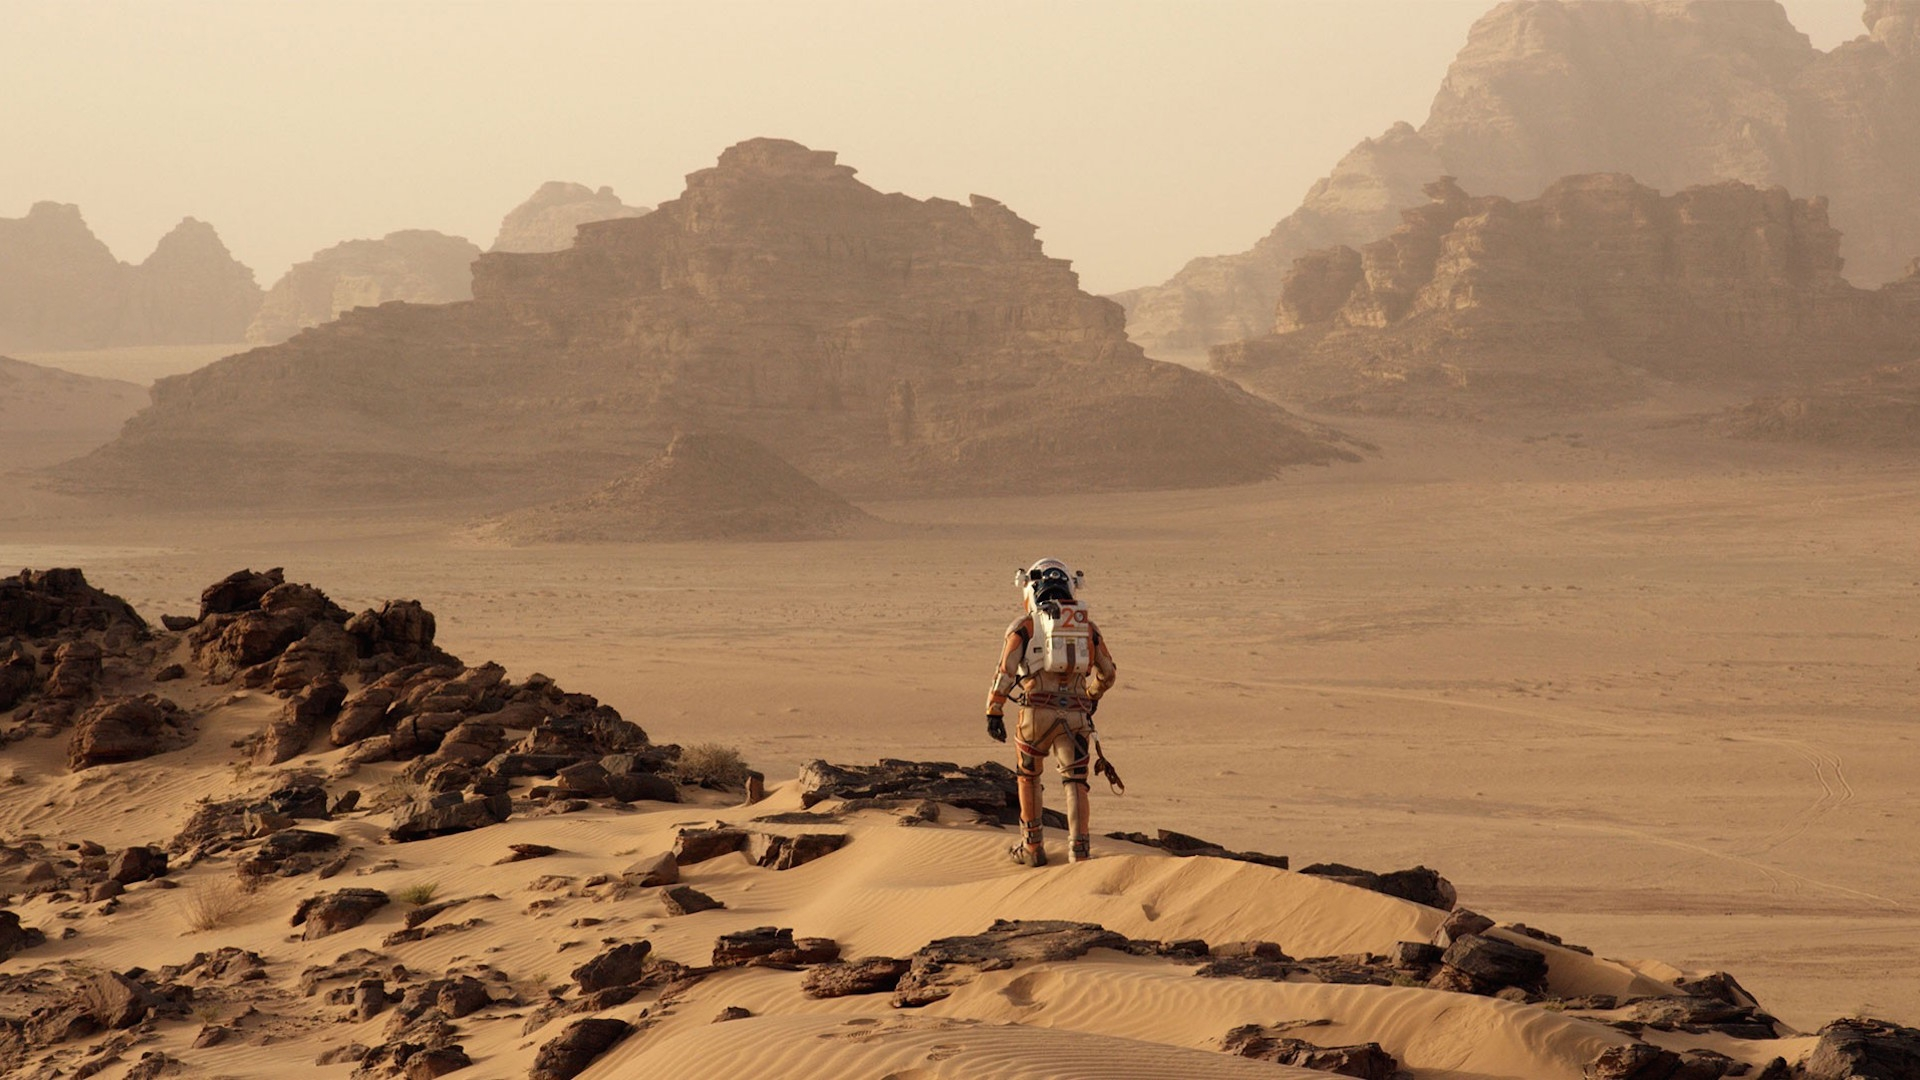 #91) The Martian(-26) - (2015 - dir. Ridley Scott)